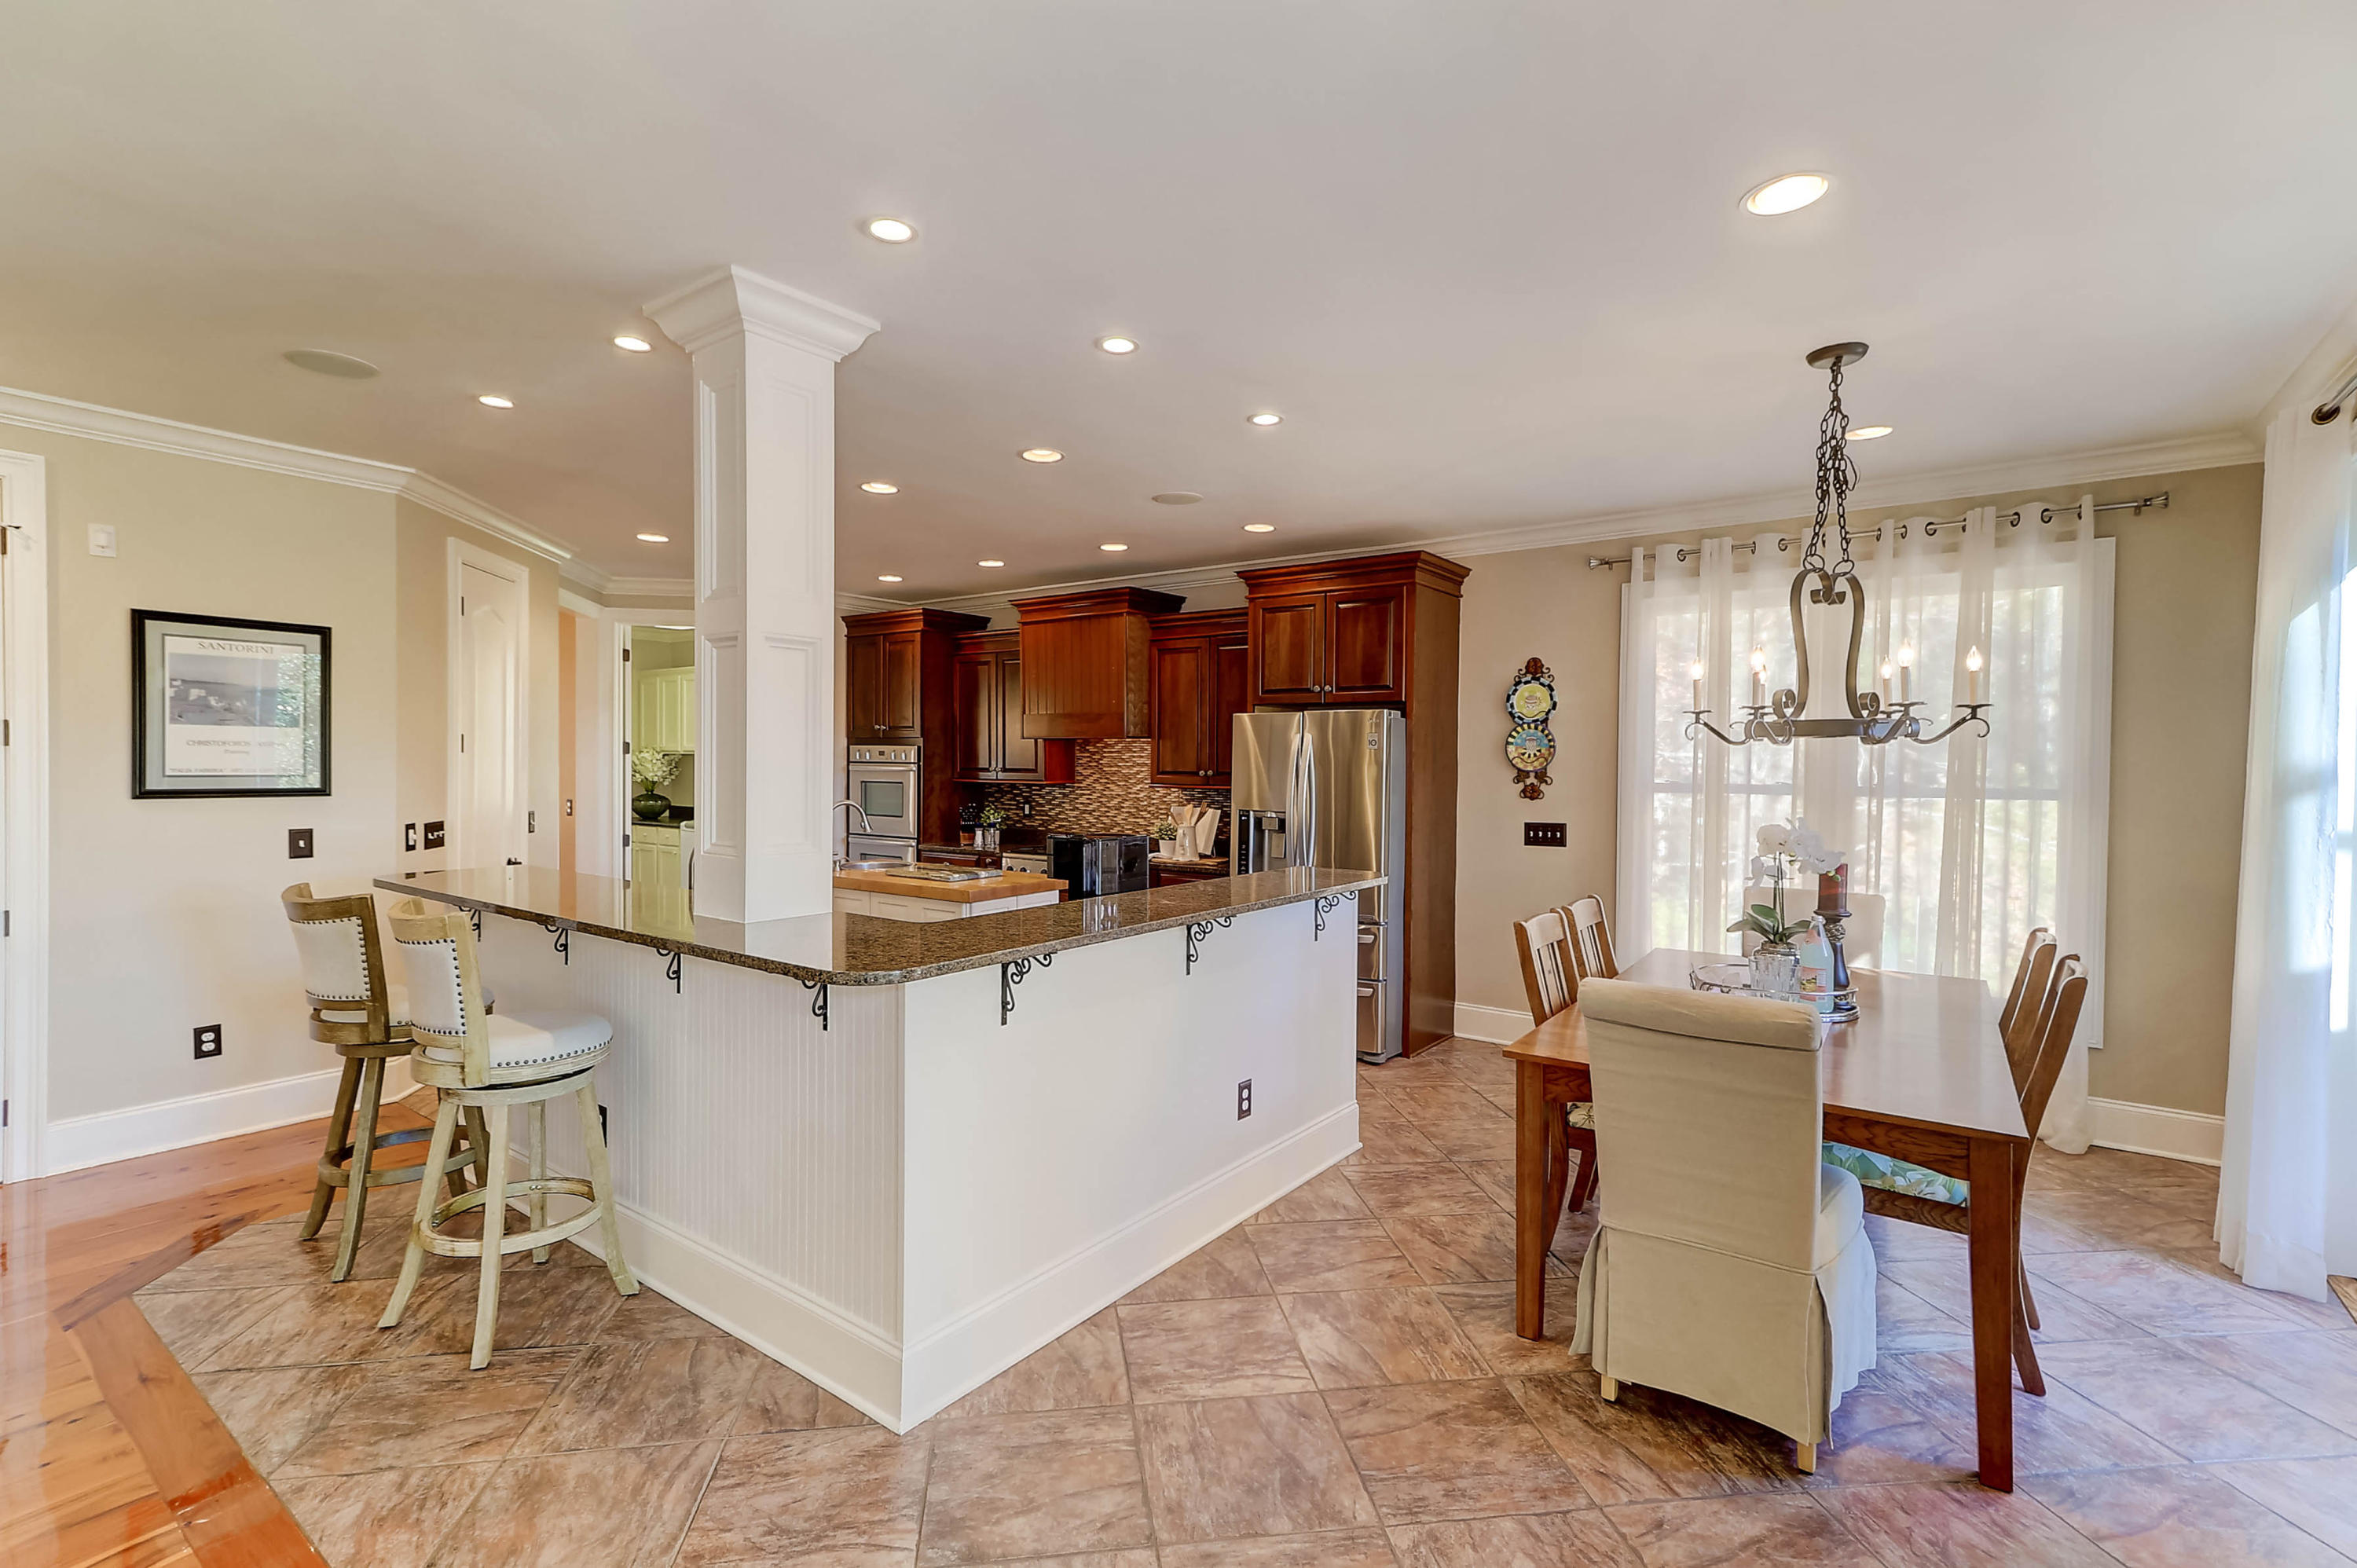 Dunes West Homes For Sale - 1764 Greenspoint, Mount Pleasant, SC - 11